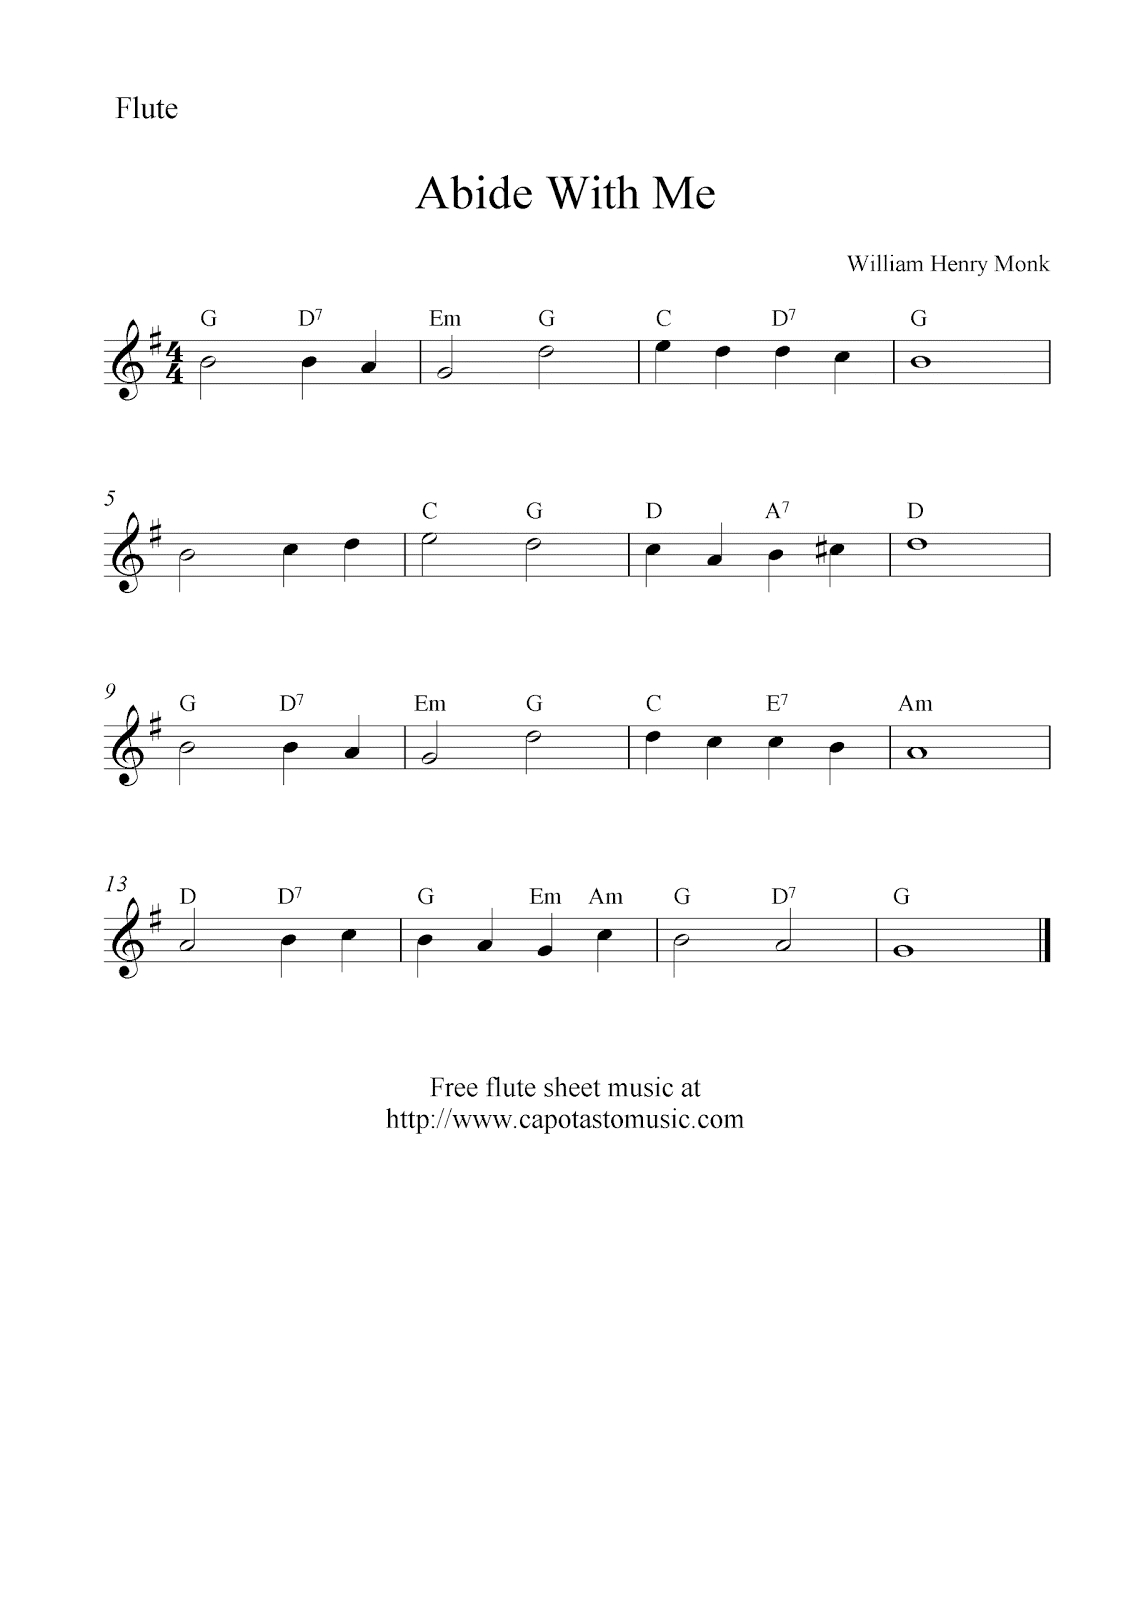 Free Flute Sheet Music, Abide With Me - Free Printable Flute Music